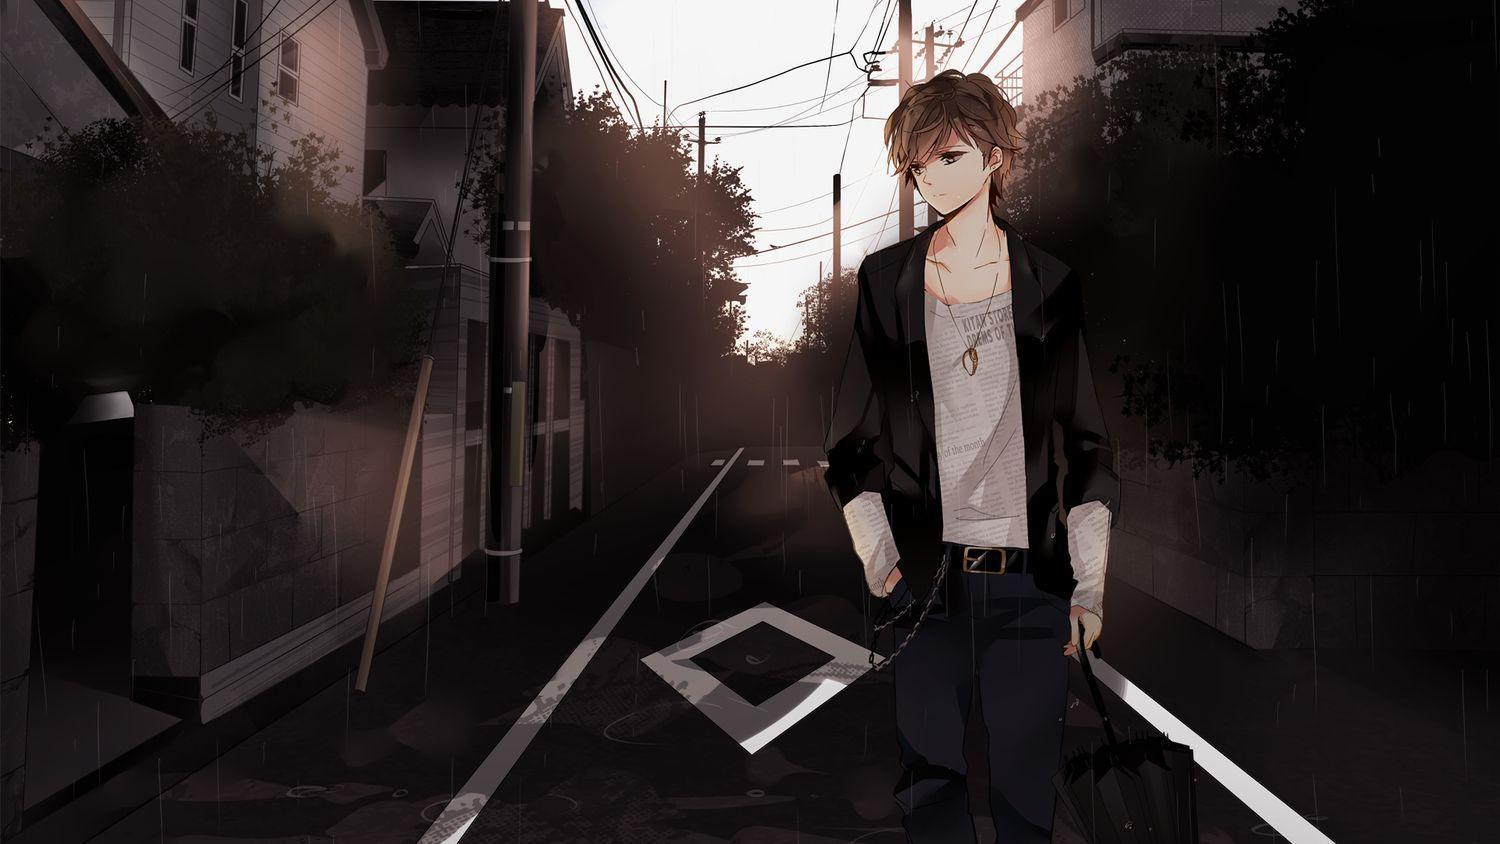 Anime boys wallpapers wallpaper cave - Wallpaper photos ...